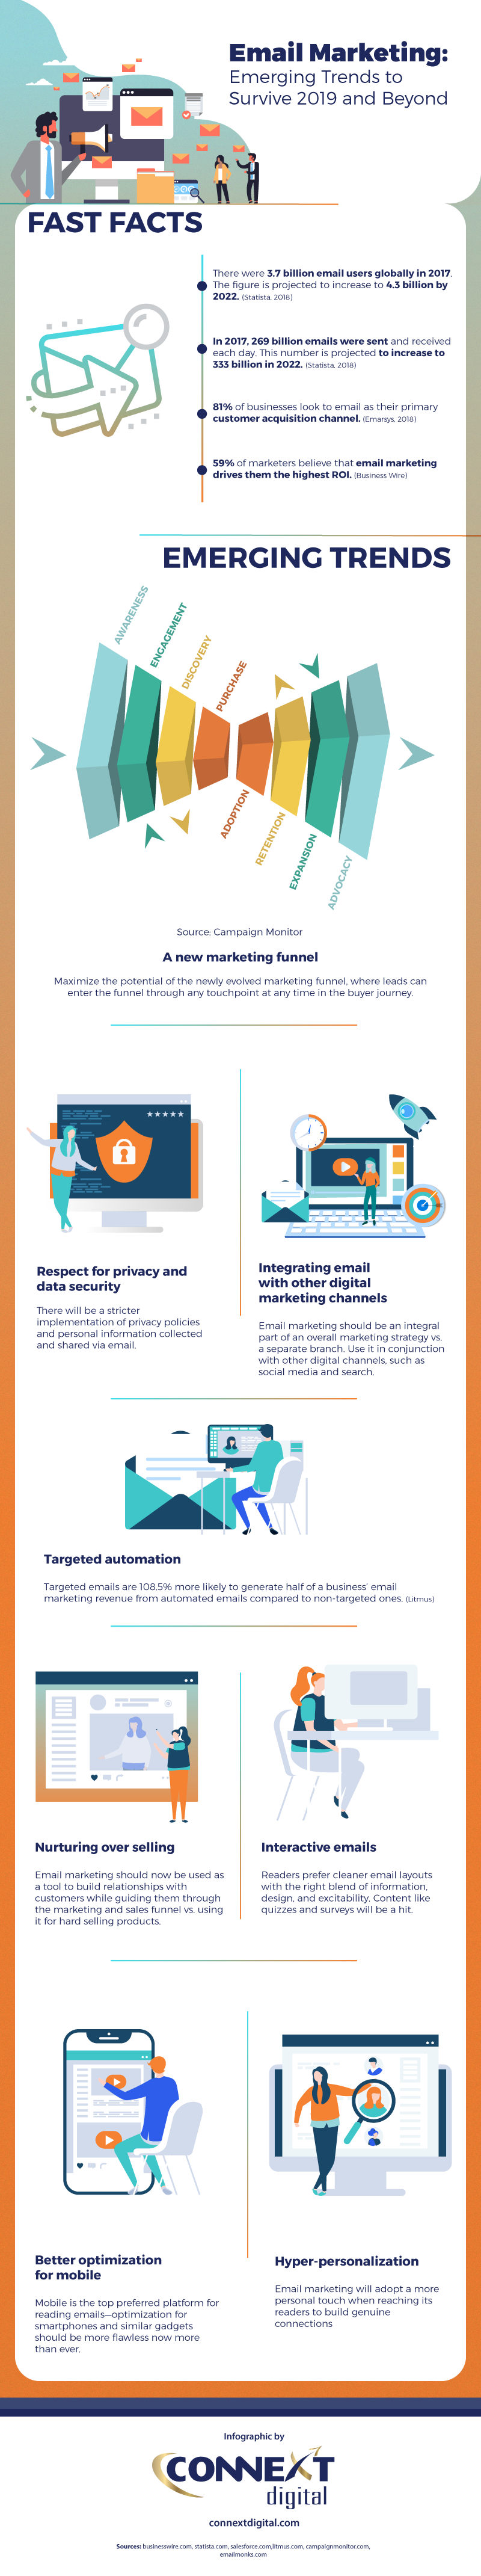 Infographic_Email-Marketing-Emerging-Trends-to-Survive-2019-and-Beyond (1)